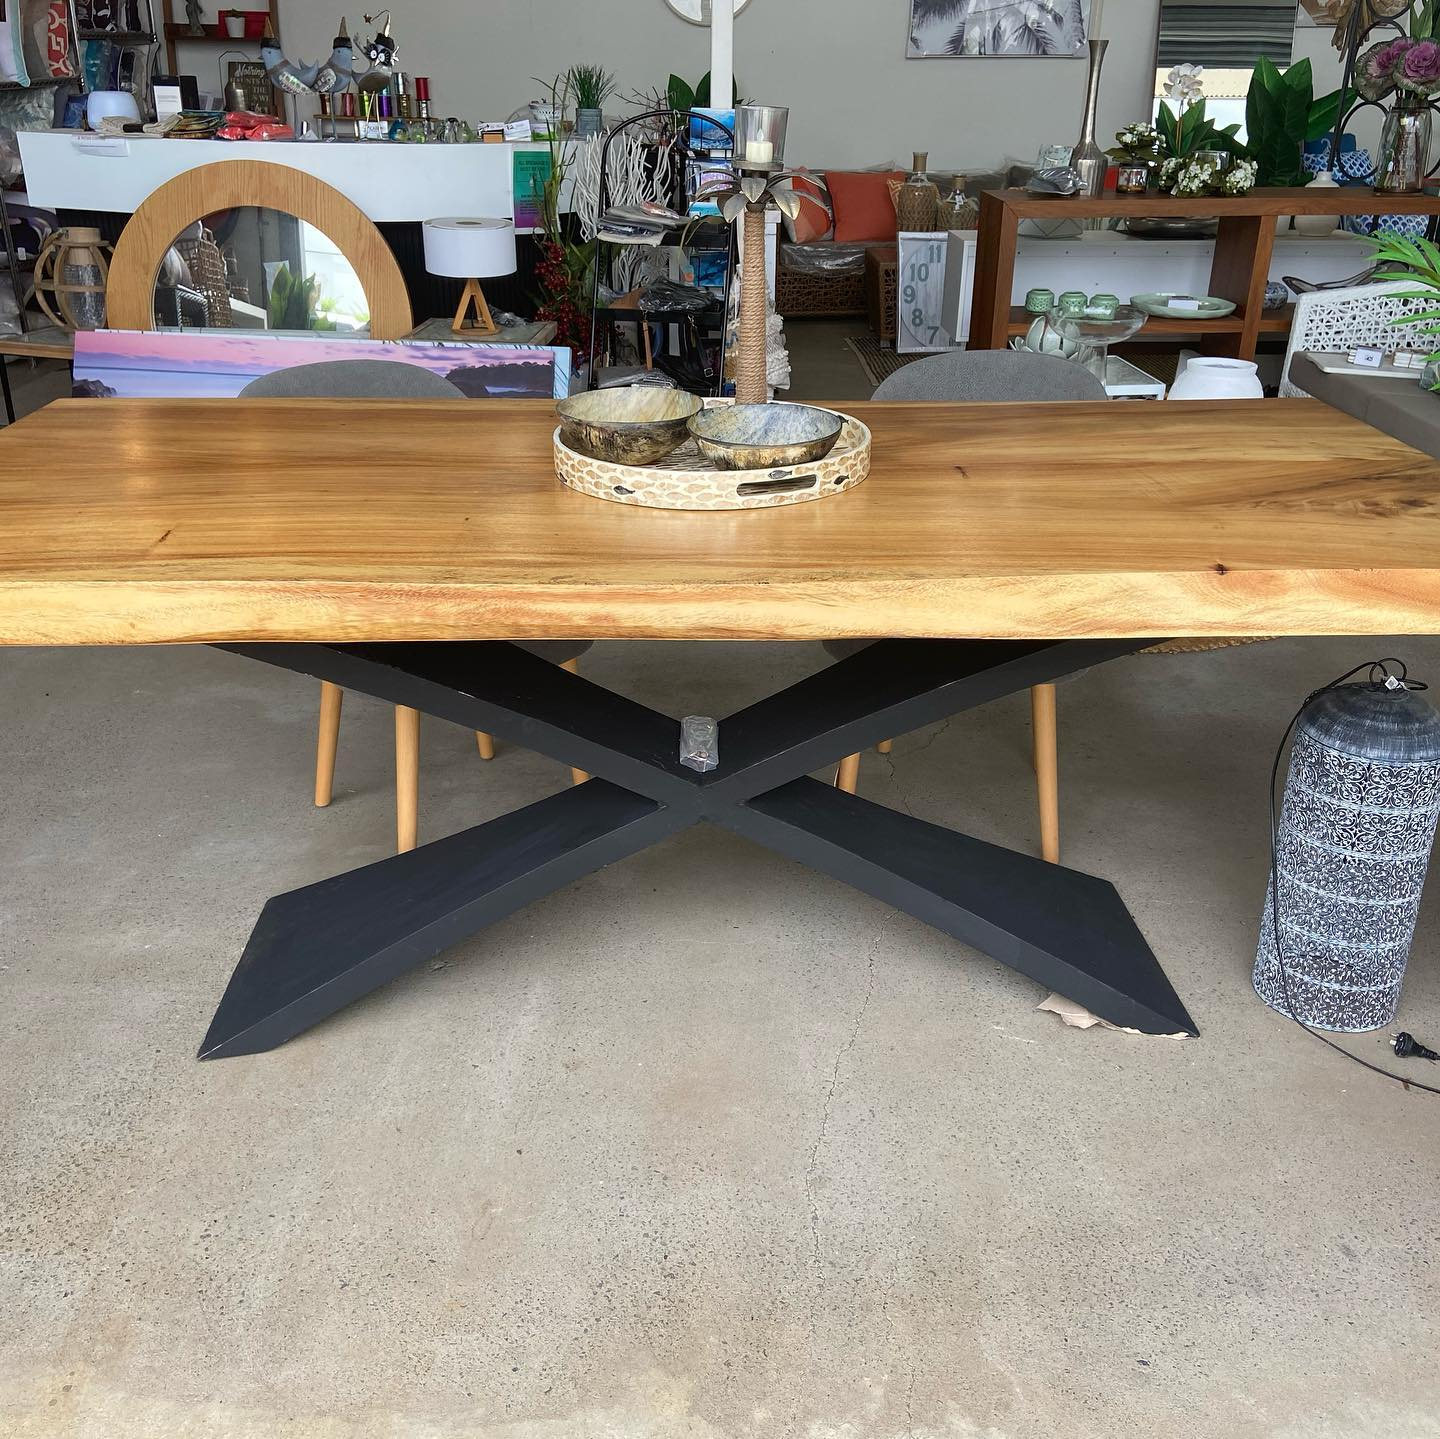 Beautiful timber table - solid carved Mango wood with elegant metal cross legs 210 x 94 cm. Come and have a look at Posh Lifestyle.